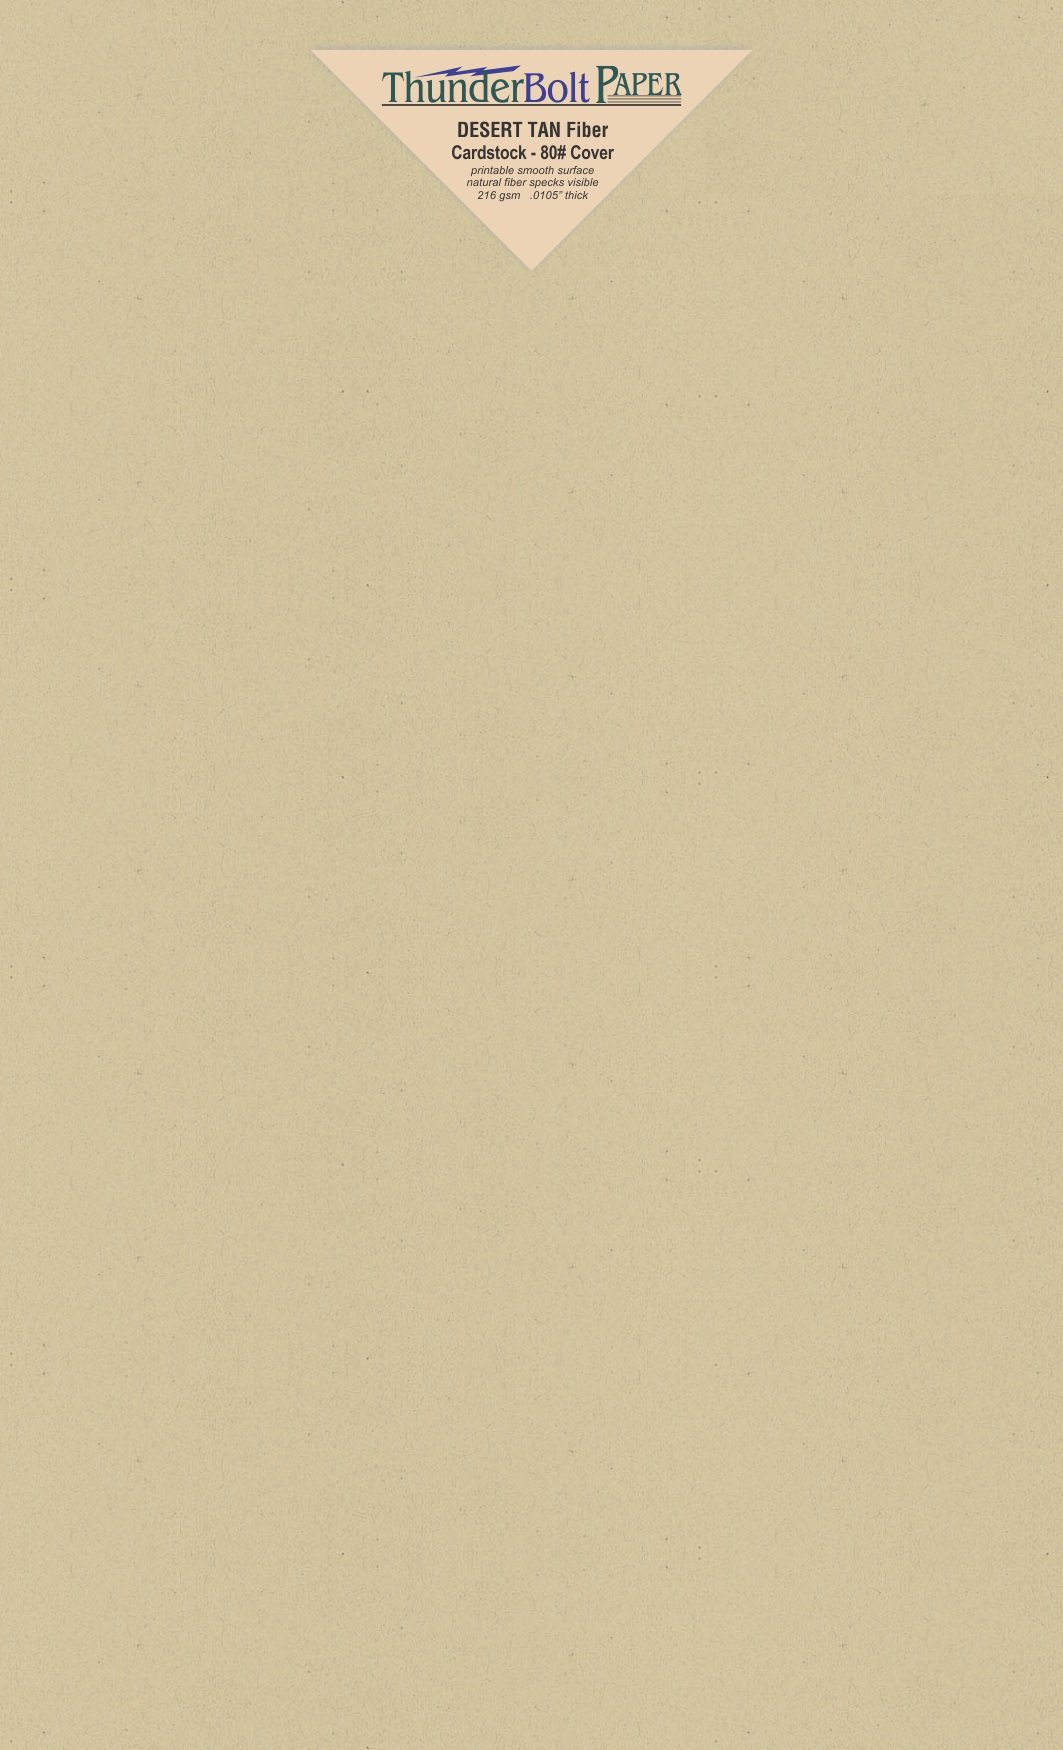 250 Desert Tan Fiber Finish Cardstock Paper Sheets - 8.5 X 14 Inches Legal|Menu Size - 80 lb/Pound Cover|Card Weight 216 GSM - Natural Fiber with Darker Specks - Slightly Rough Finish